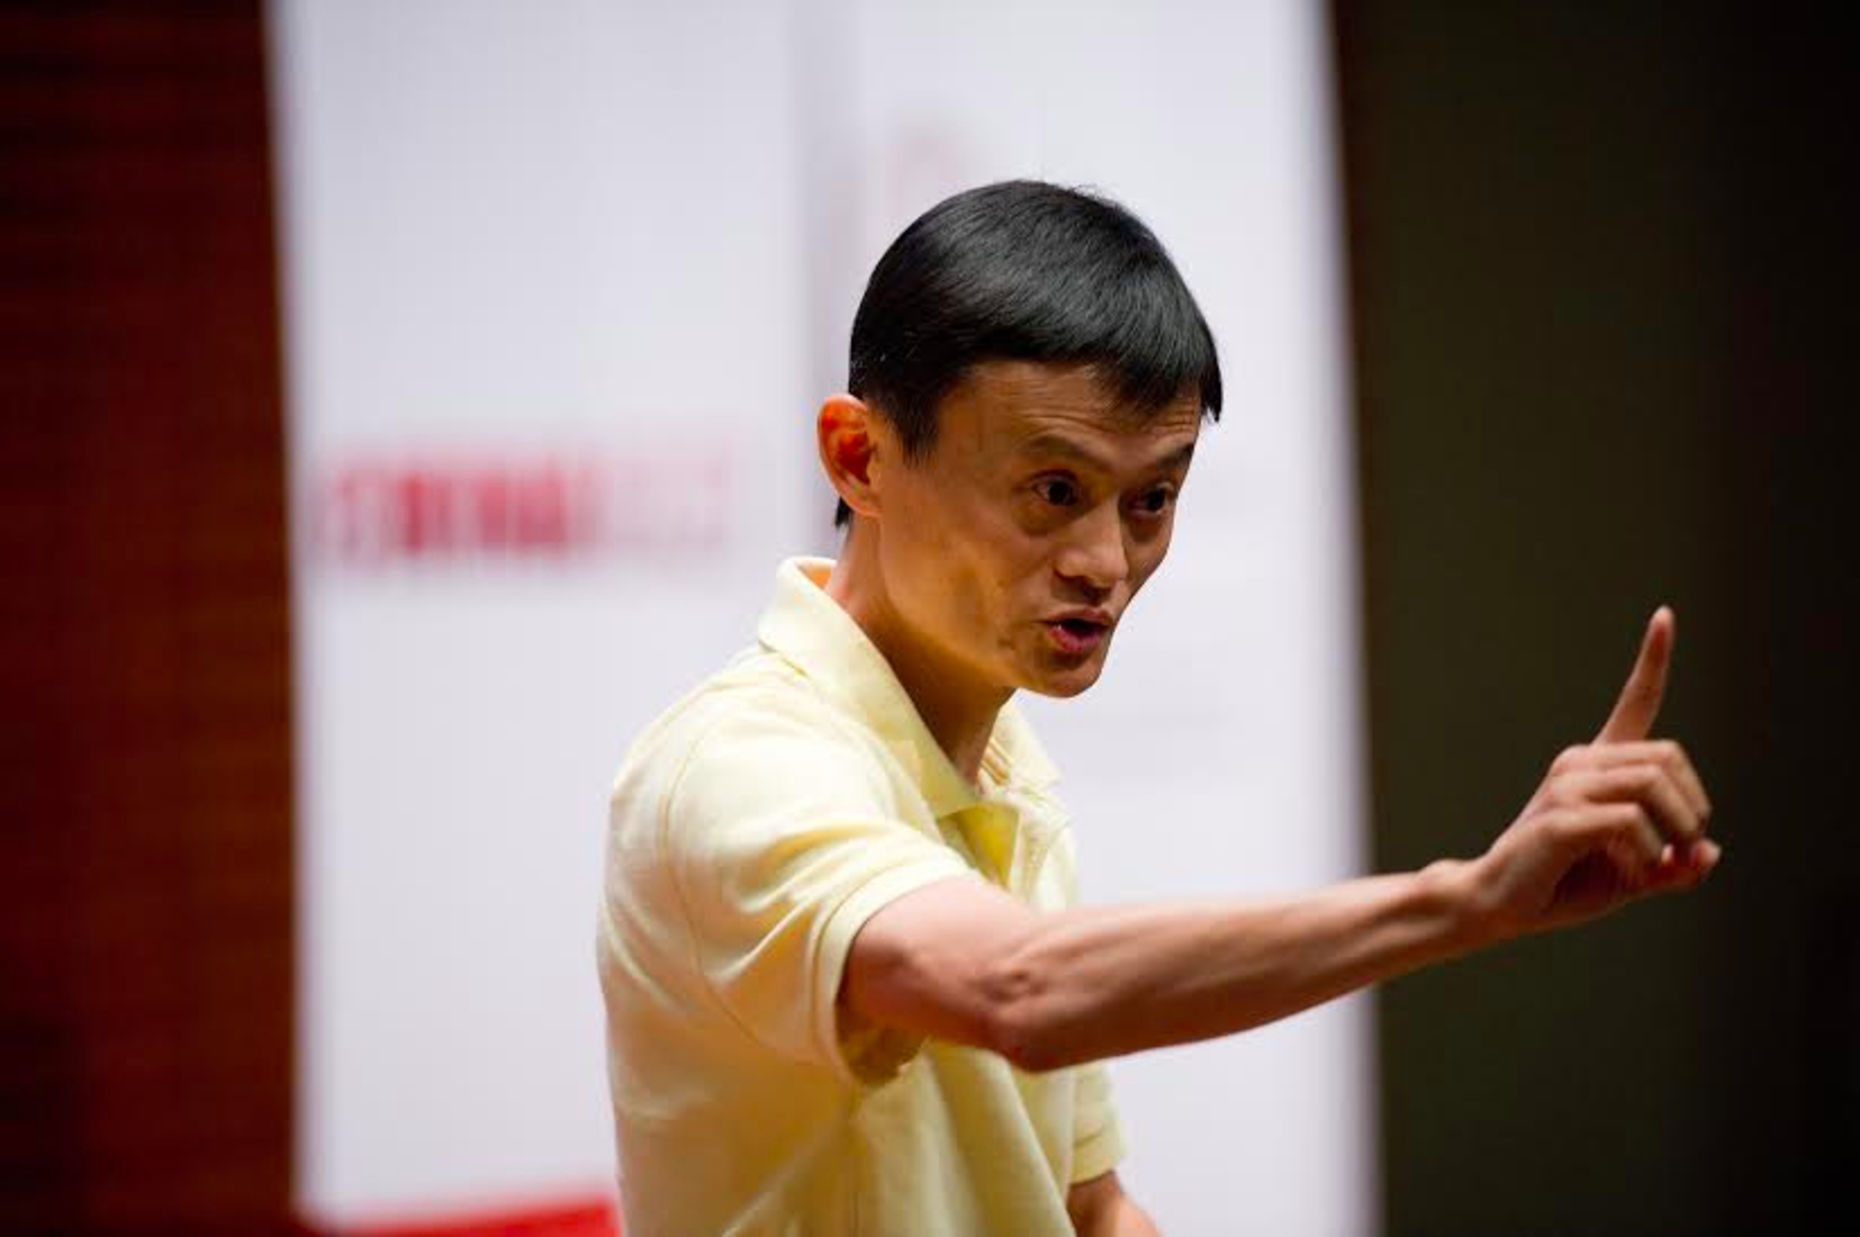 Jack Ma, founder of Alibaba. Photo by Bloomberg.